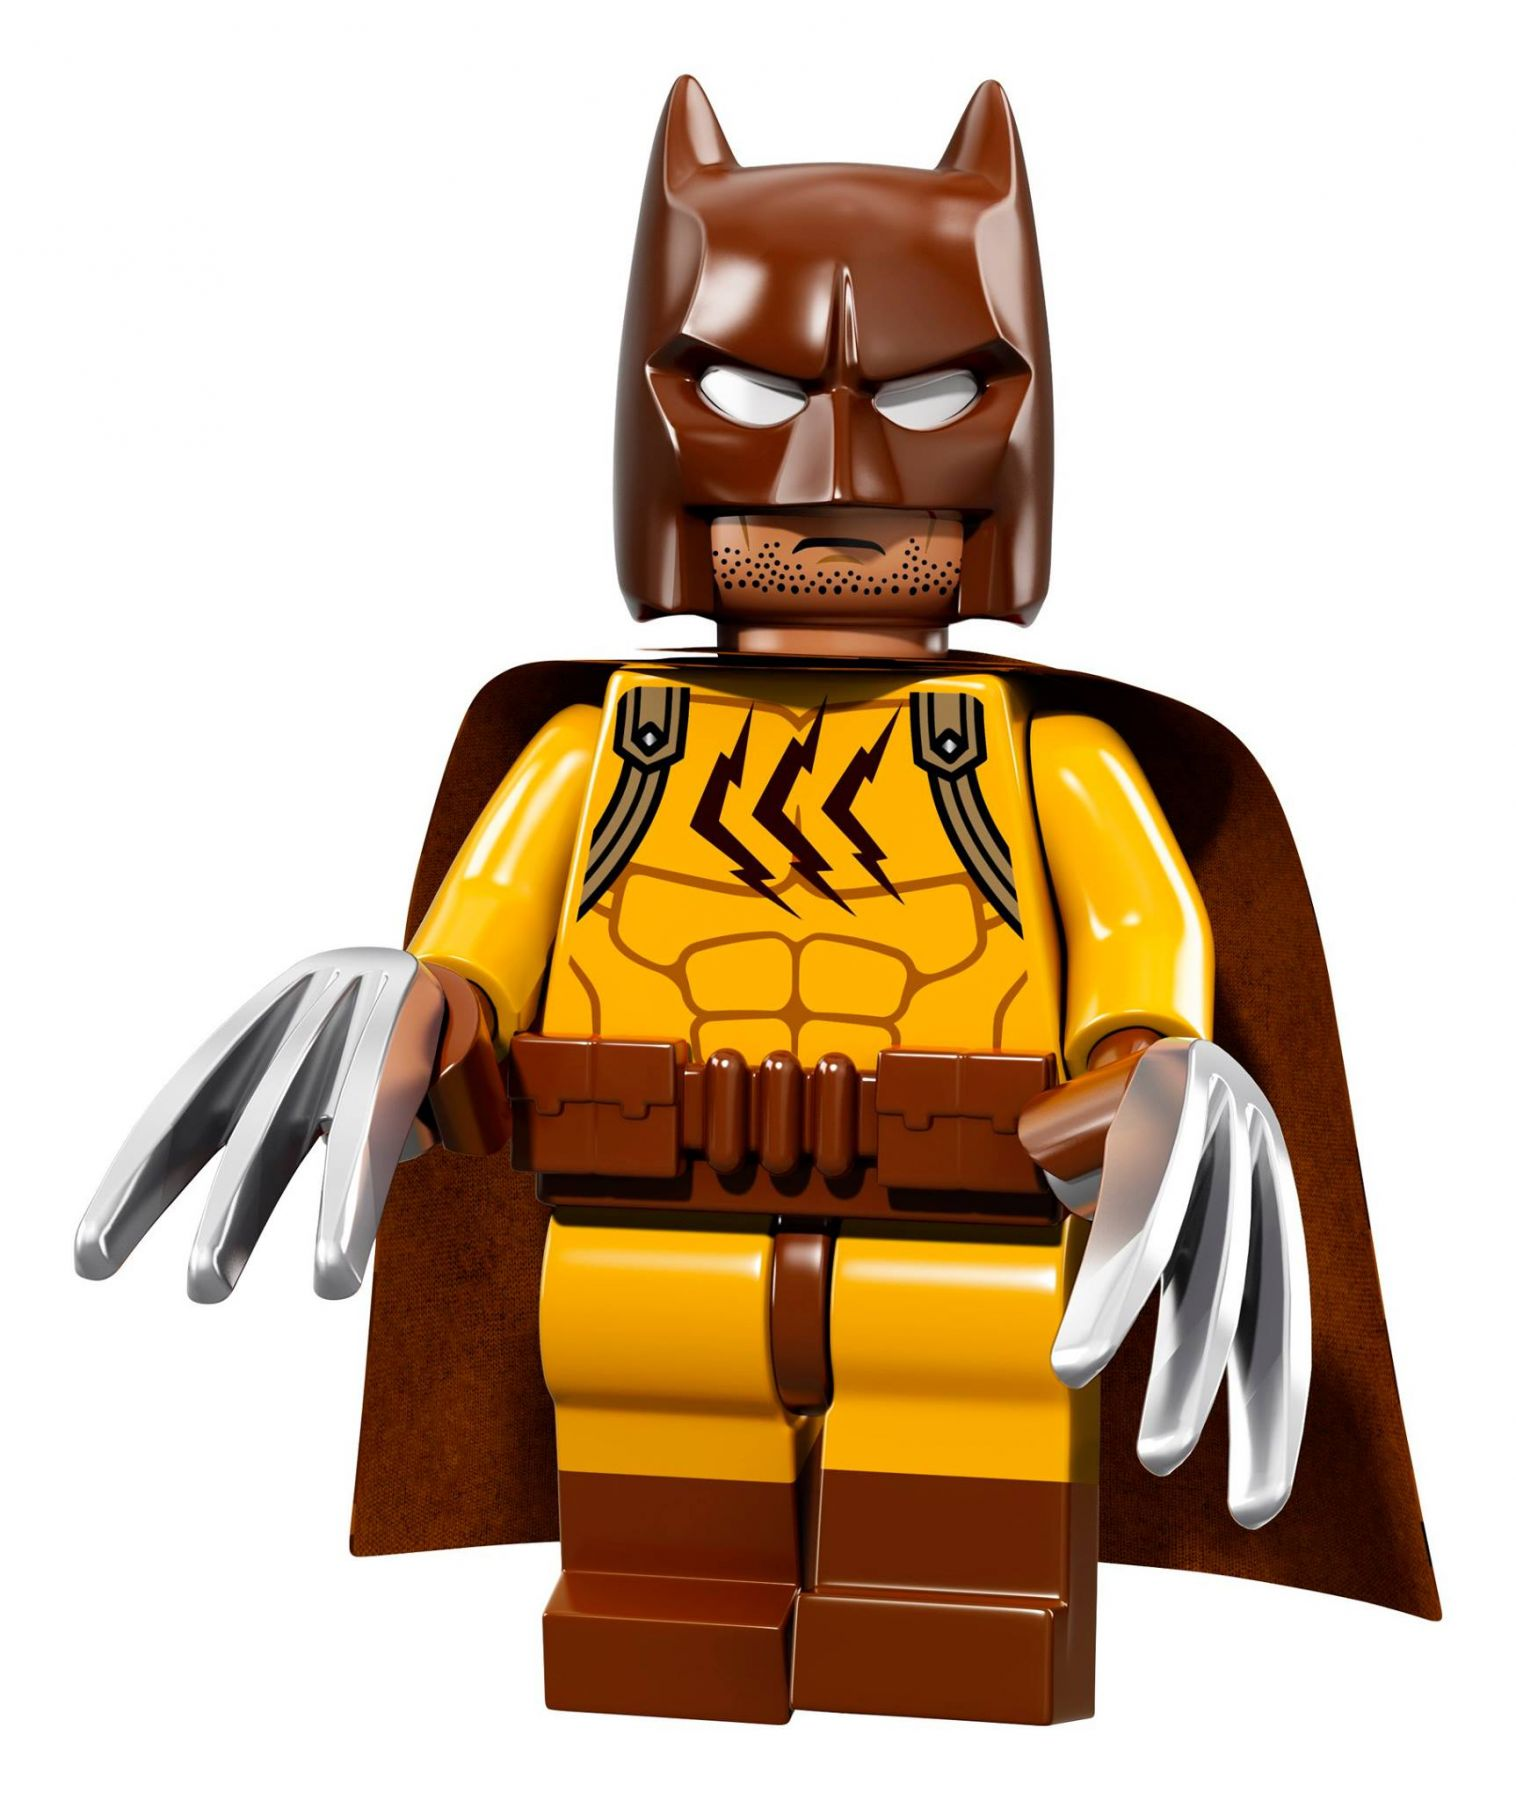 LEGO Collectable Minifigures 71017 LEGO® Batman Movie Minifiguren Serie 71017_LEGO_Batman_Movie_Minifiguren_Serie_figur19.jpg